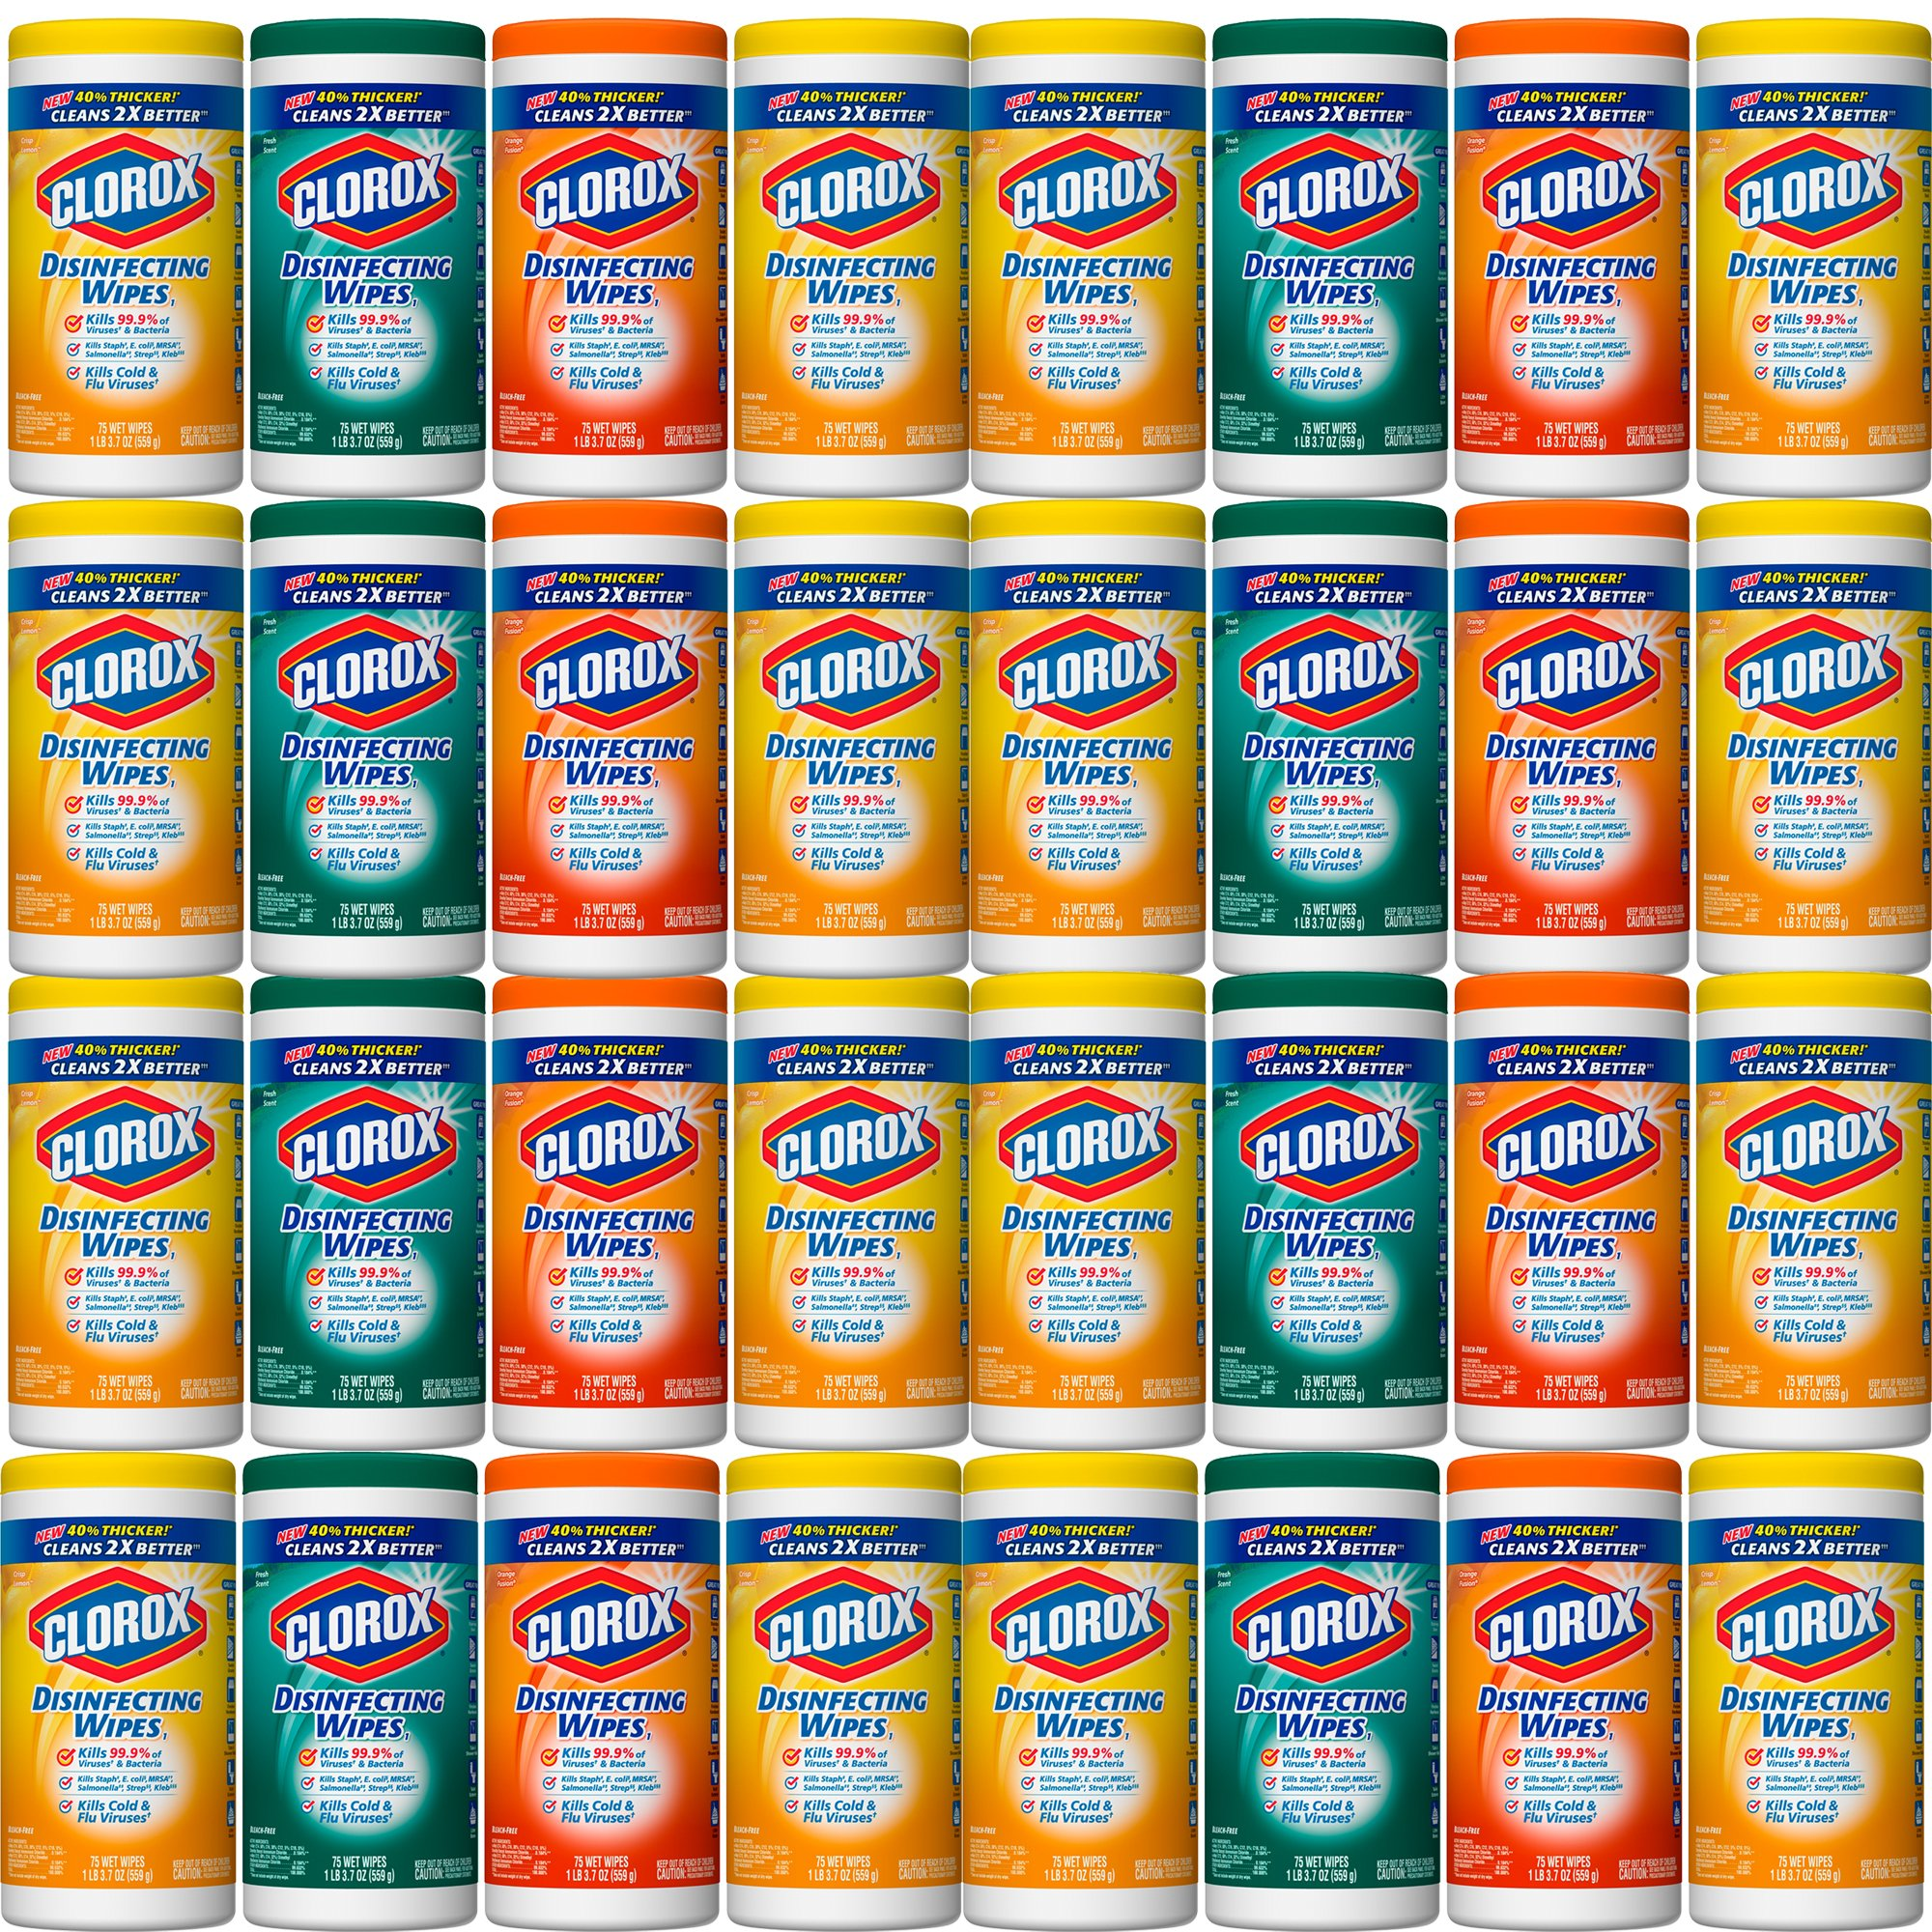 Clorox Disinfecting Wipes Value Pack, Citrus Blend, Fresh Scent and Orange Fusion, 8-Pack